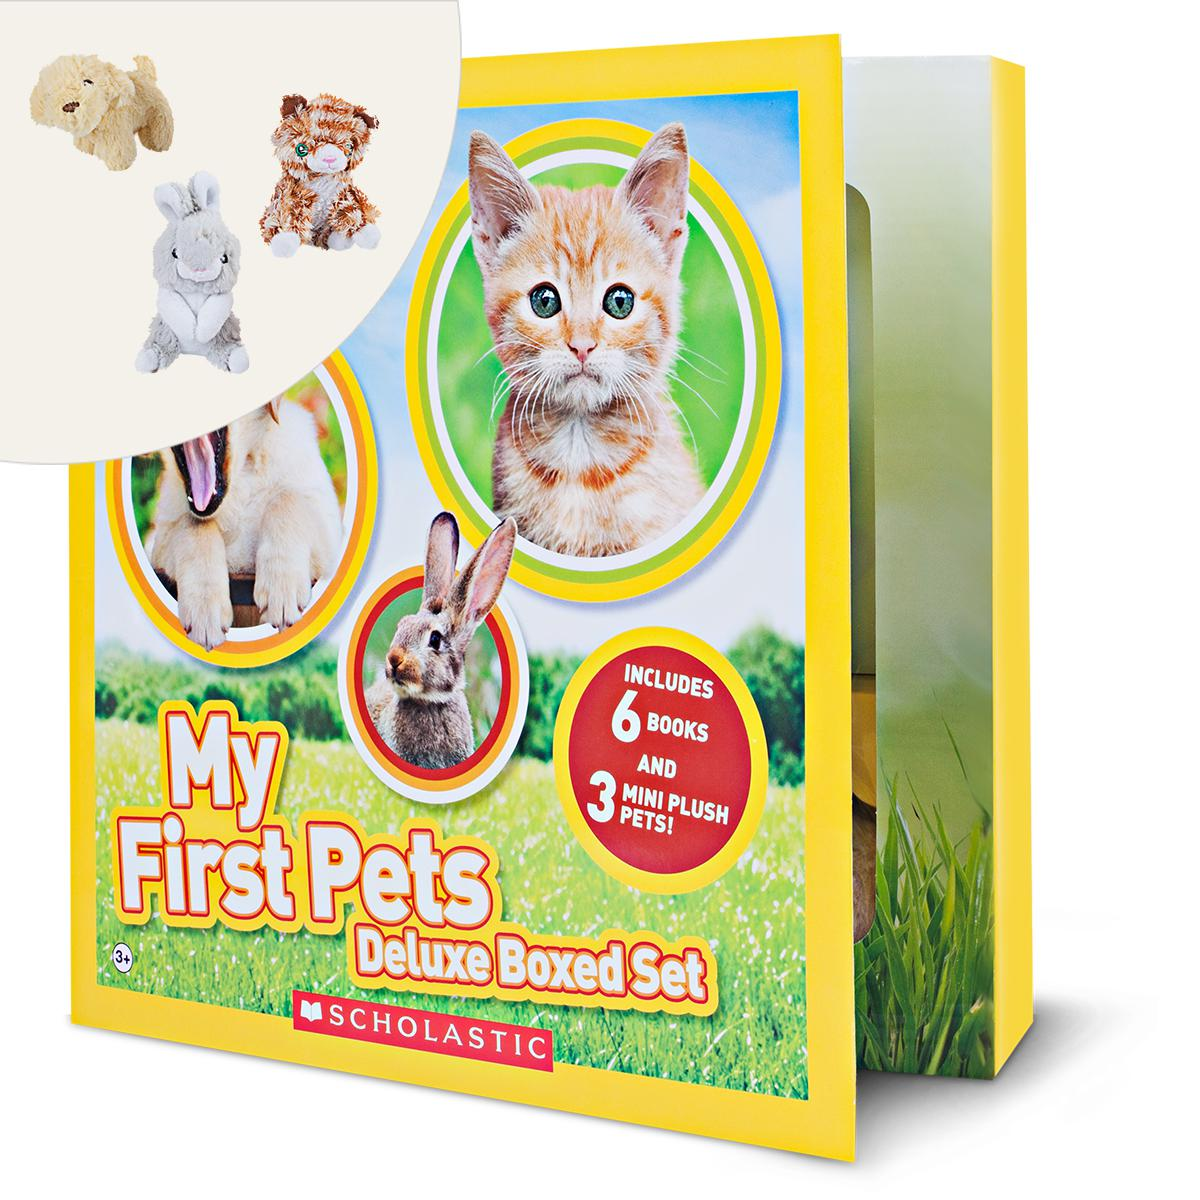 National Geographic Kids: My First Pets Deluxe Boxed Set